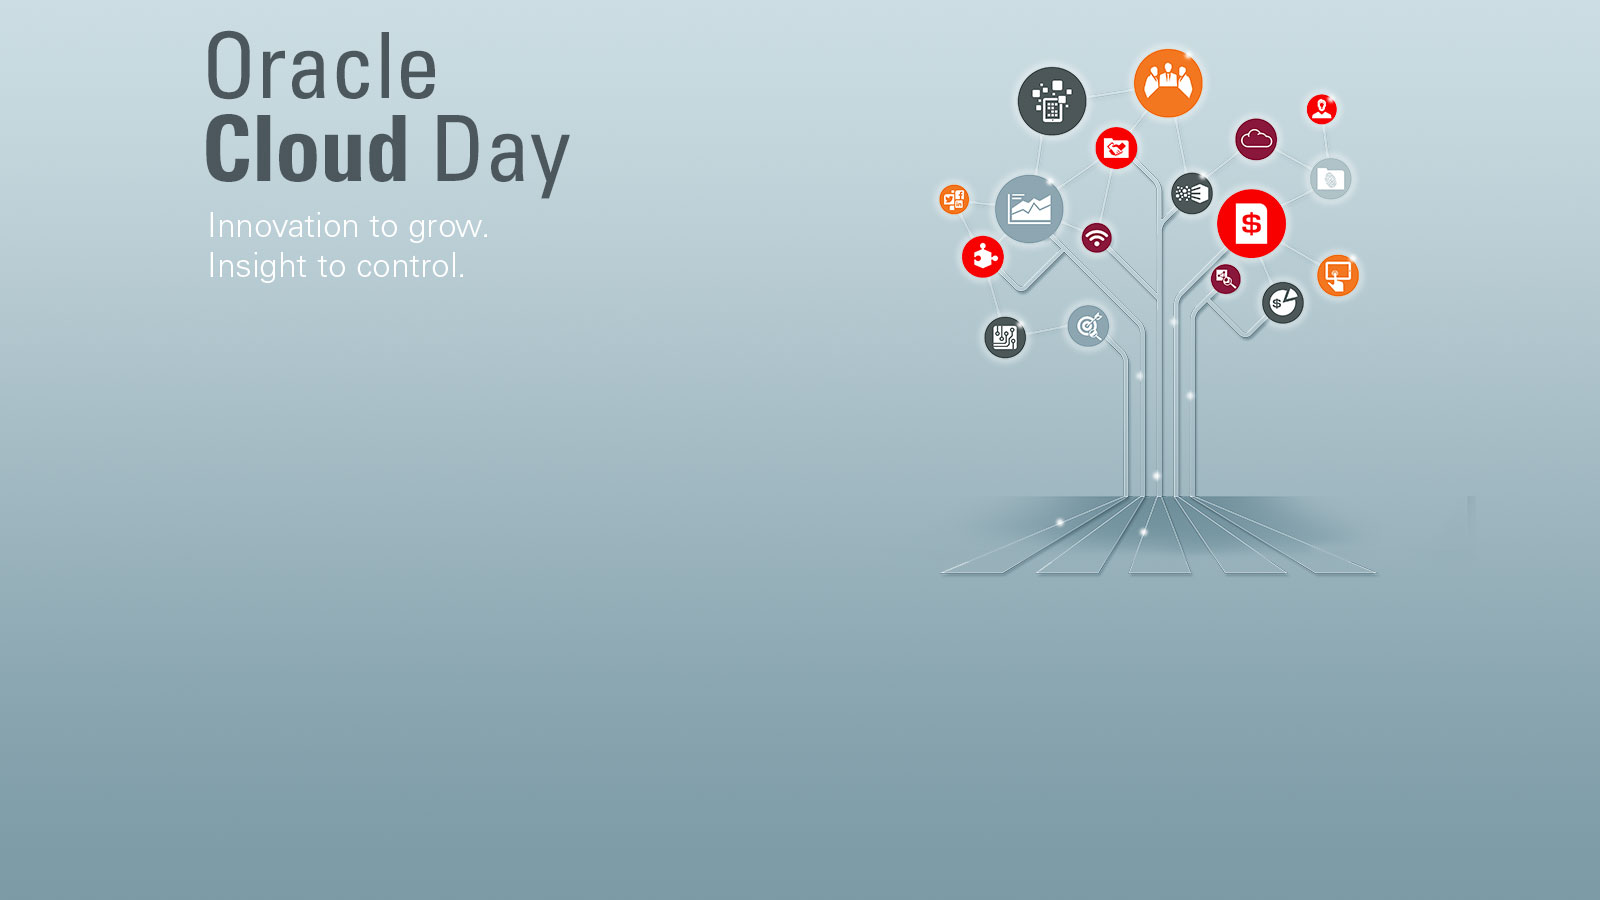 Oracle Cloud Day 2016 op dinsdag 6 december, RAI Amsterdam